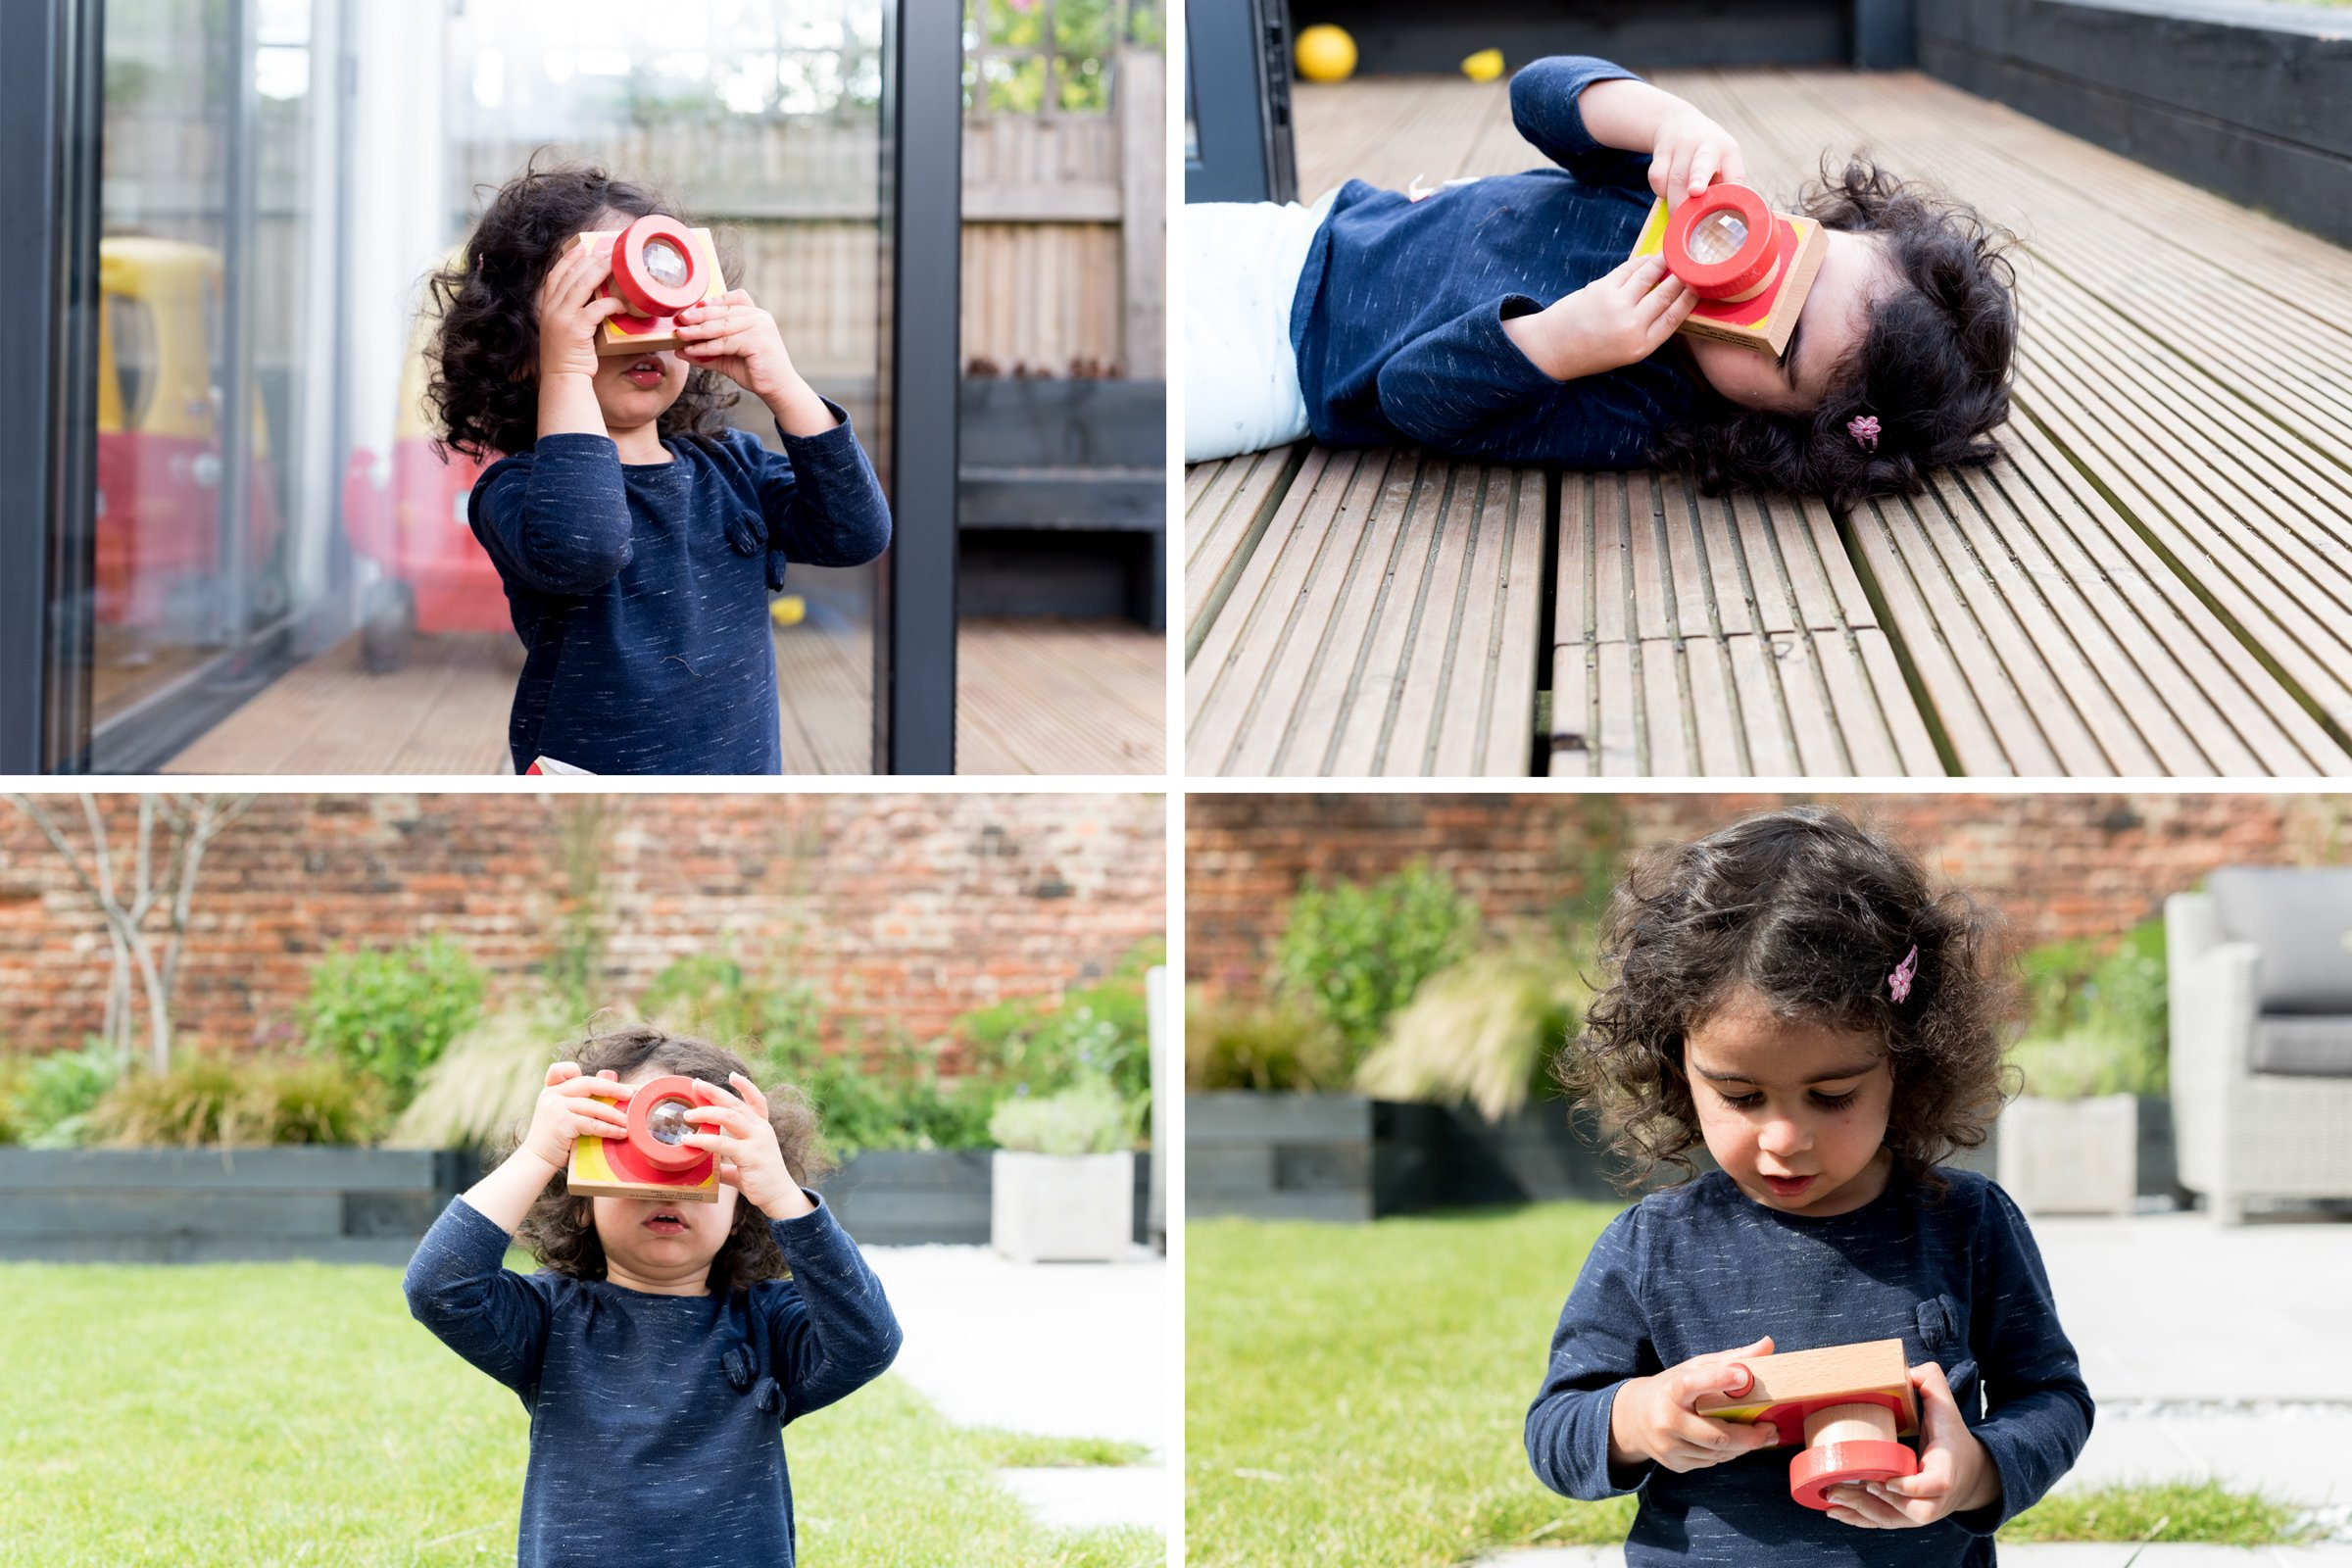 A photography scavenger hunt for children. Encourage your child's passion for creativity and photography with this fun tutorial.